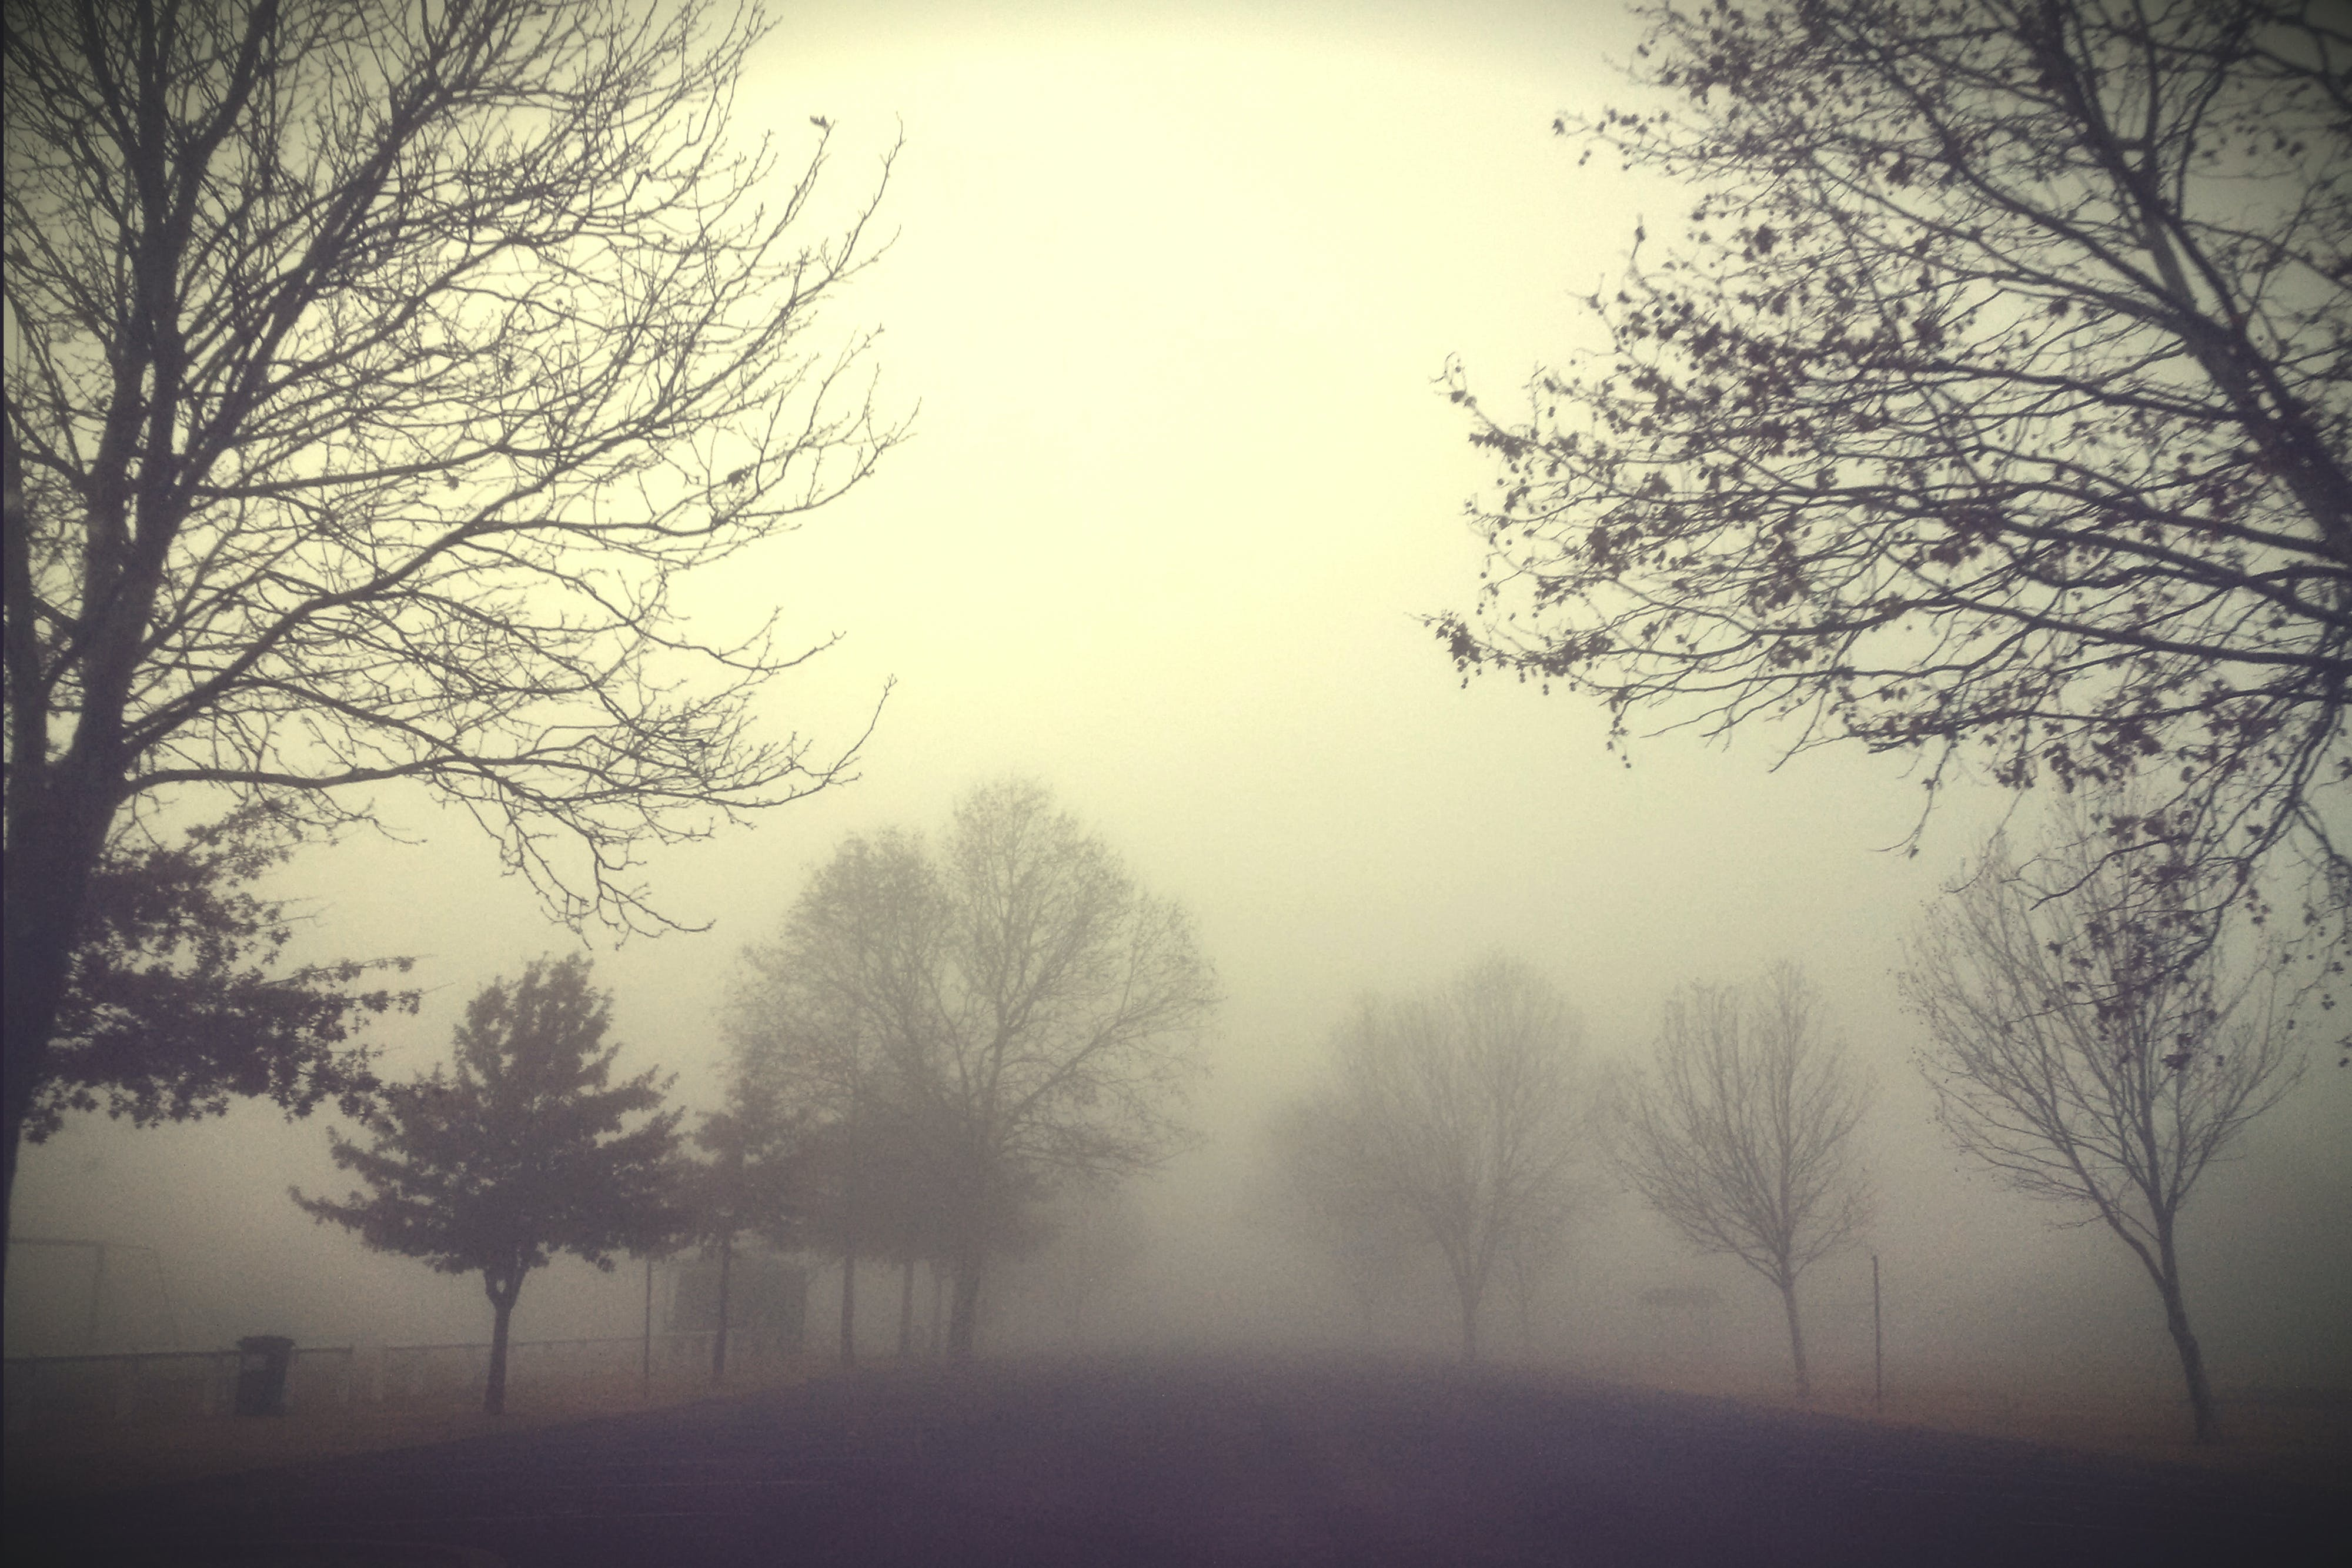 Free stock photo of early morning fog, trees, winter